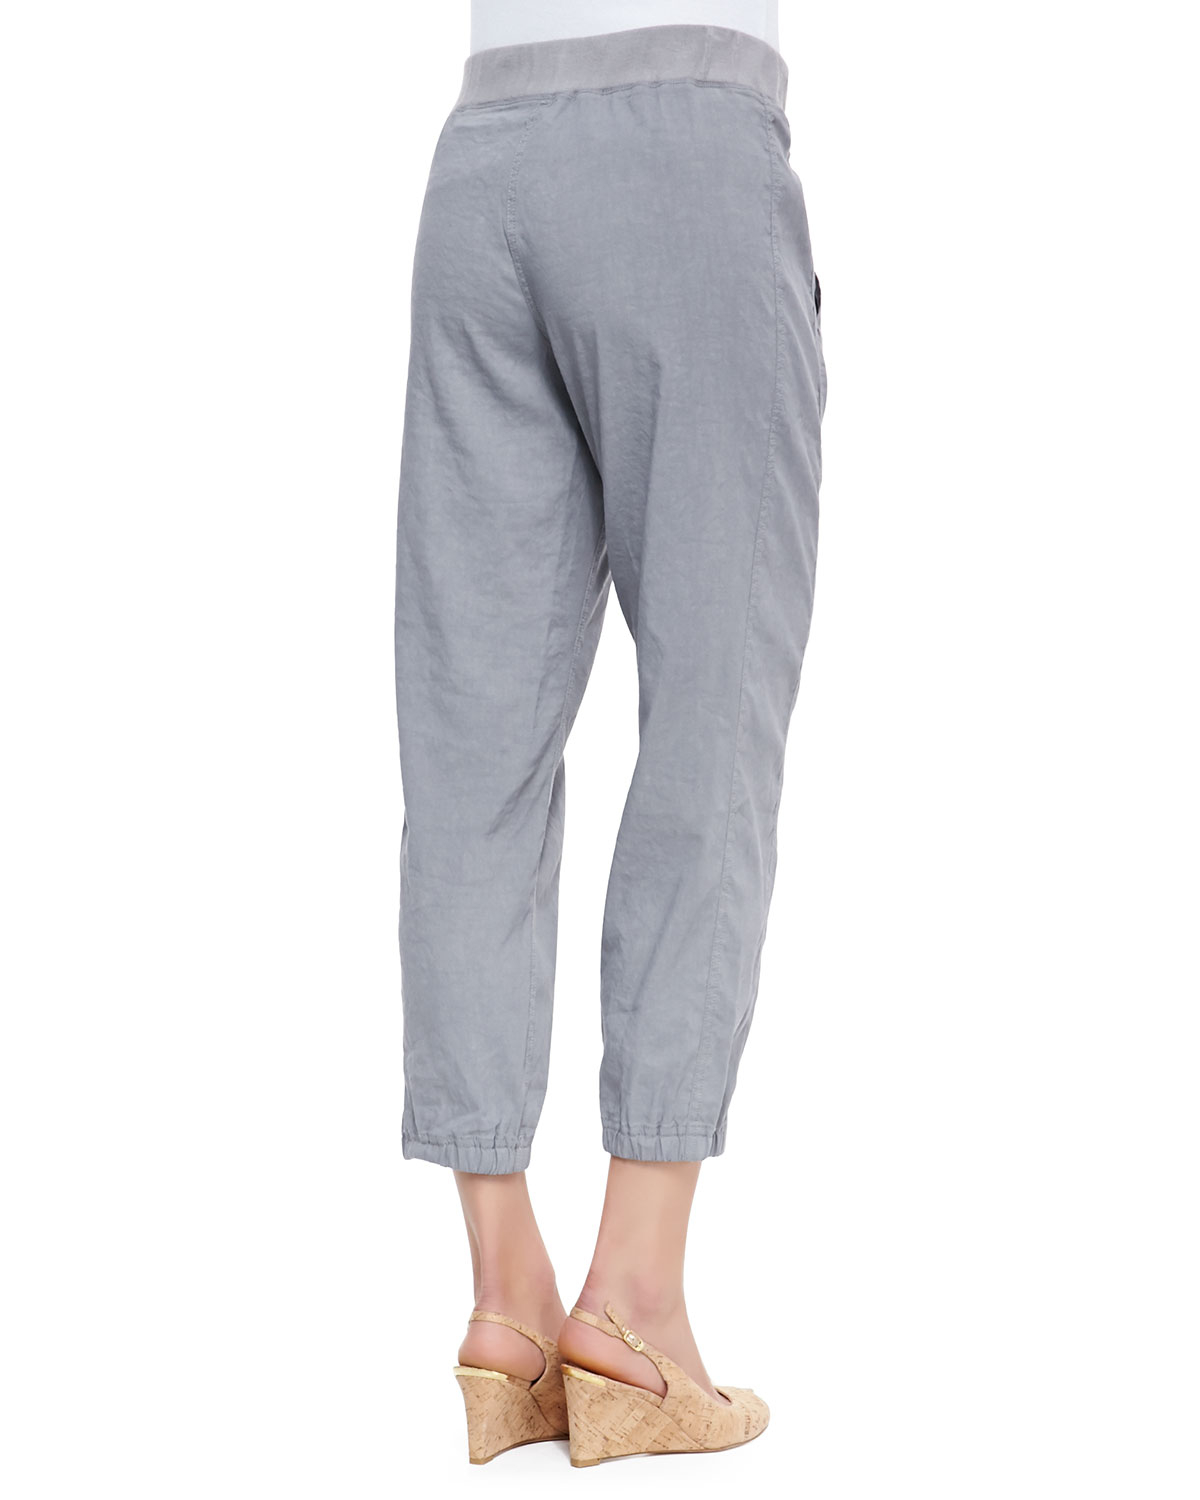 Eileen fisher Cargo Linen-Blend Ankle Pants in Gray | Lyst